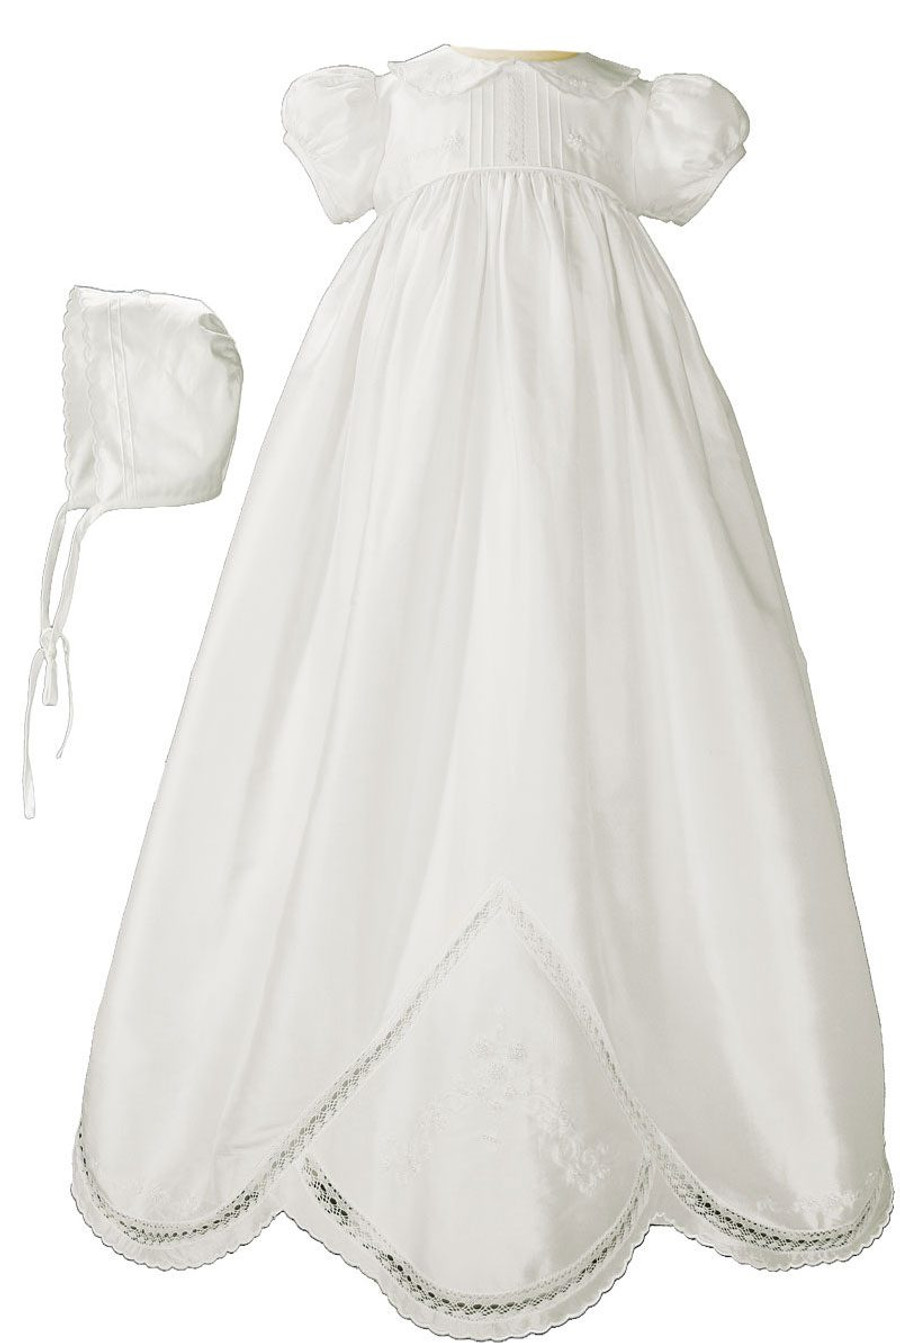 "Girls White Silk Dupioni Christening-Baptism Gown with Hand Embroidery, 33"" Length"